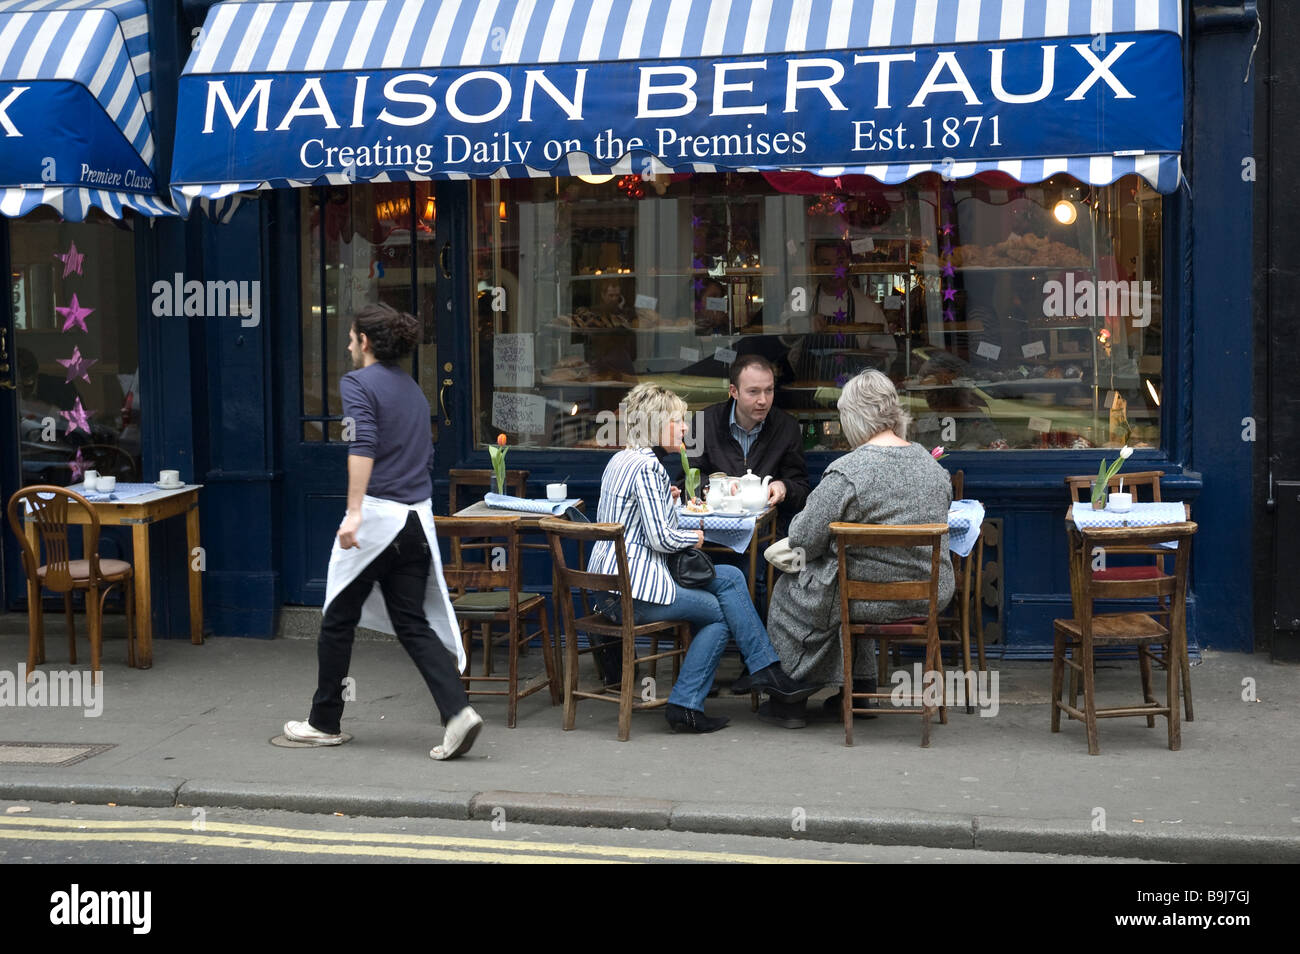 A GROUP OF FRIENDS ALFRESCO DINING AT MAISON BERTAUX- POPULAR SOHO LONDON RESTAURANT - Stock Image